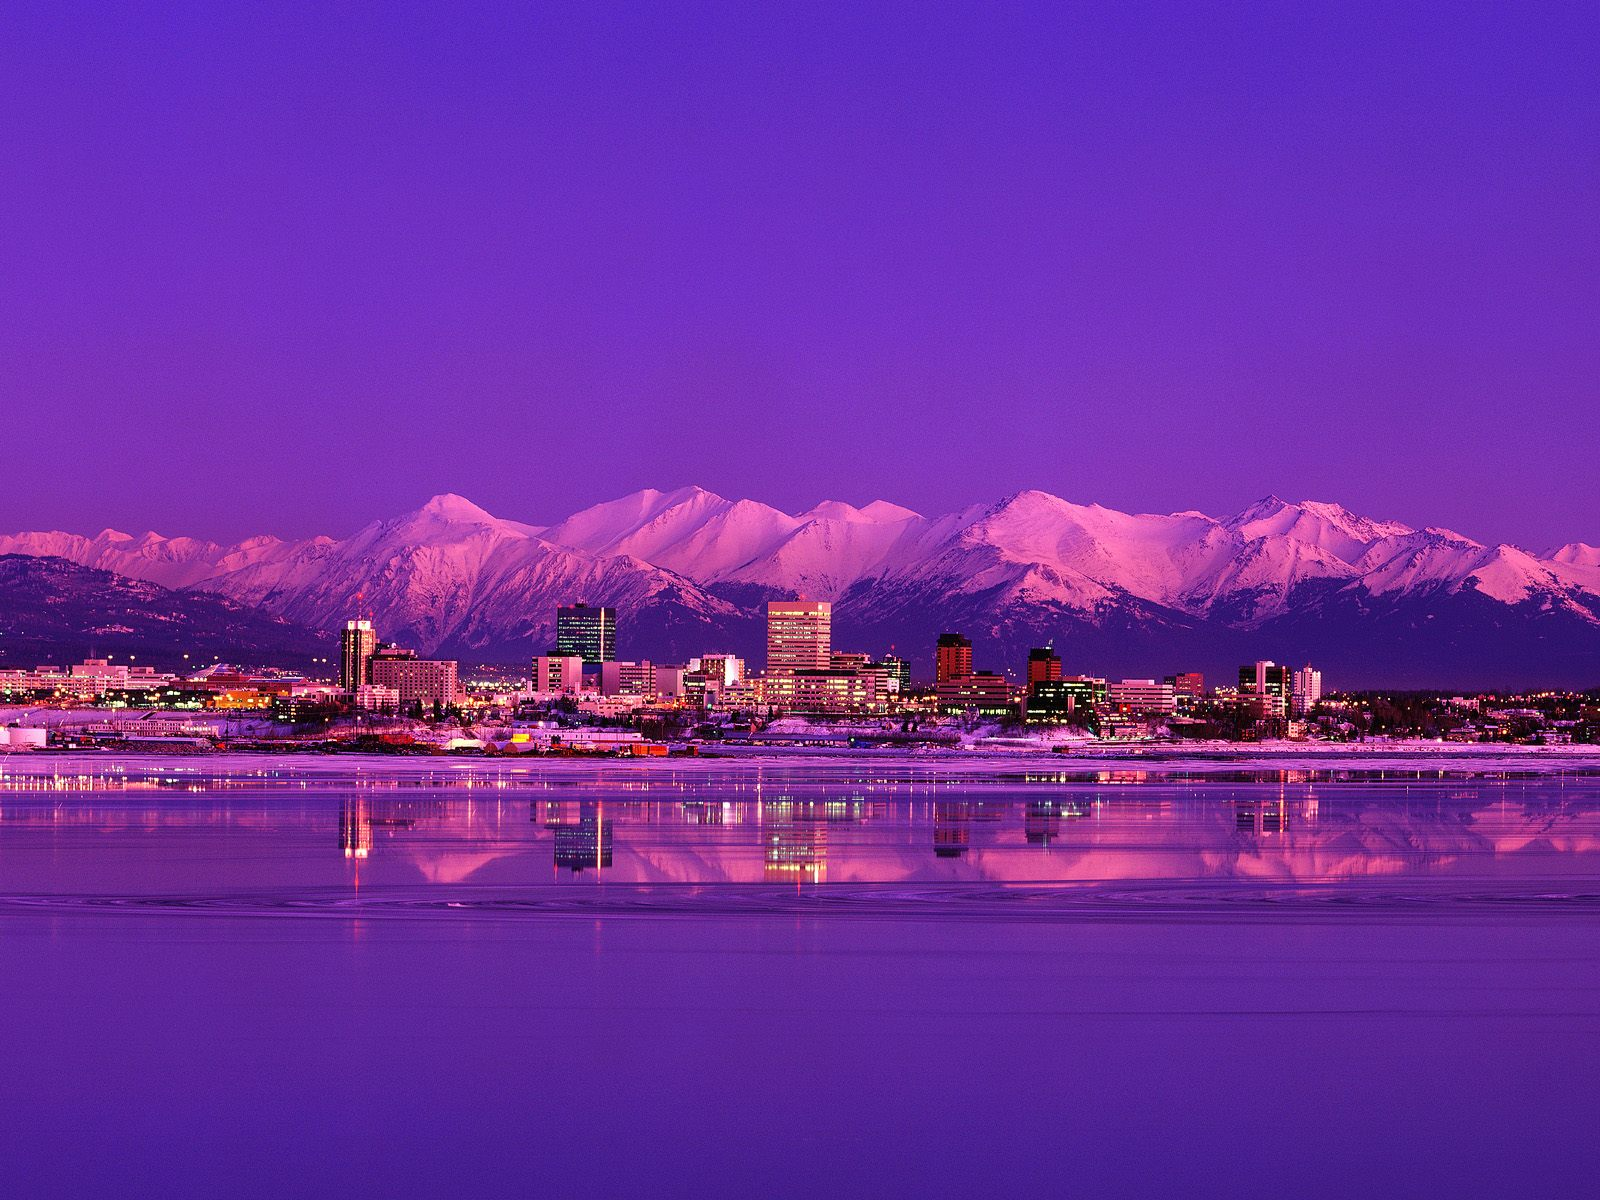 014 - Anchorage - Alaska